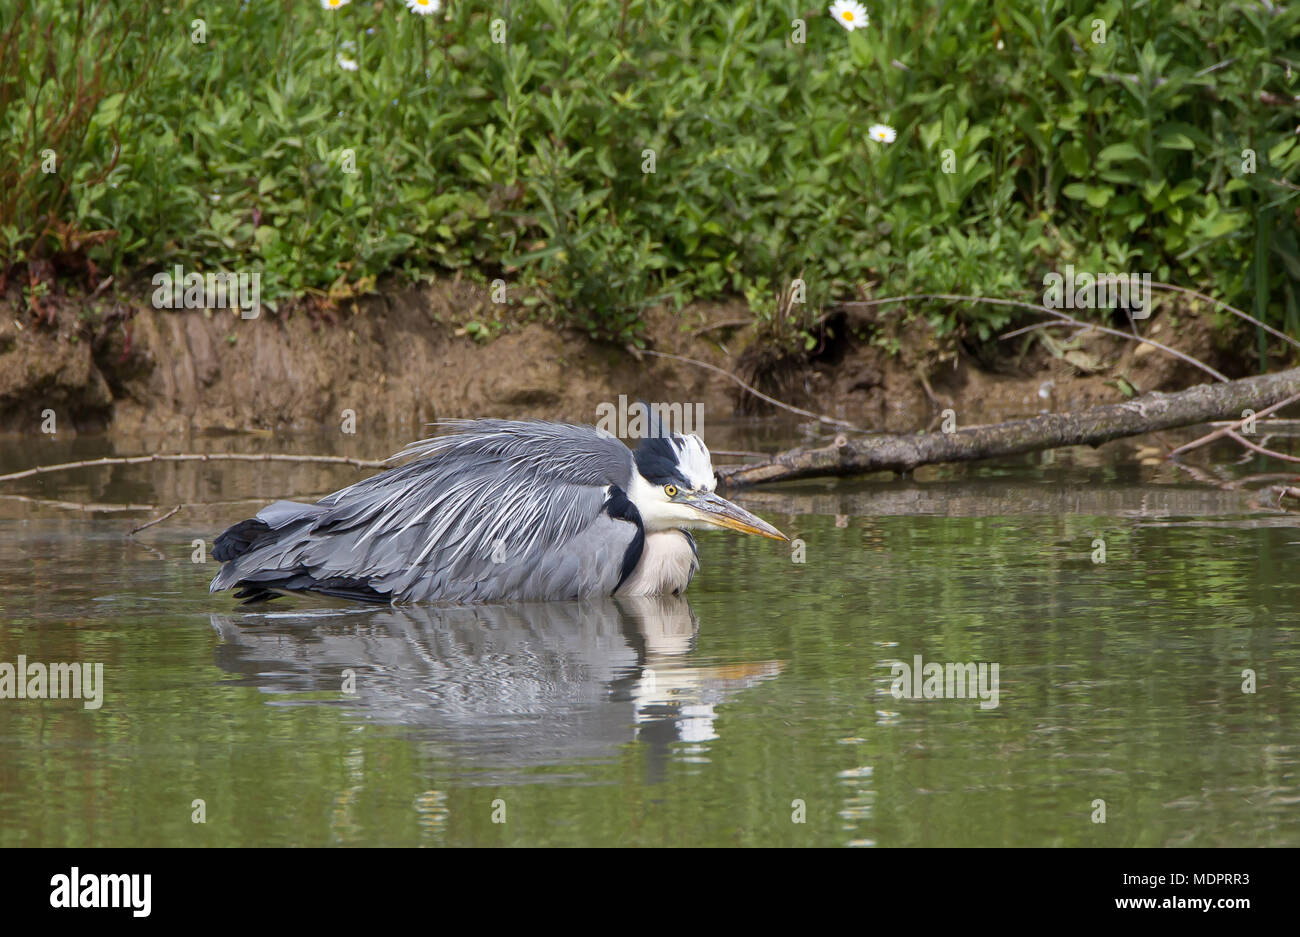 Detailed close-up, side view of wild UK grey heron bird (Ardea cinerea) crouching down, creeping stealthily through the water, hunting fish for dinner - Stock Image